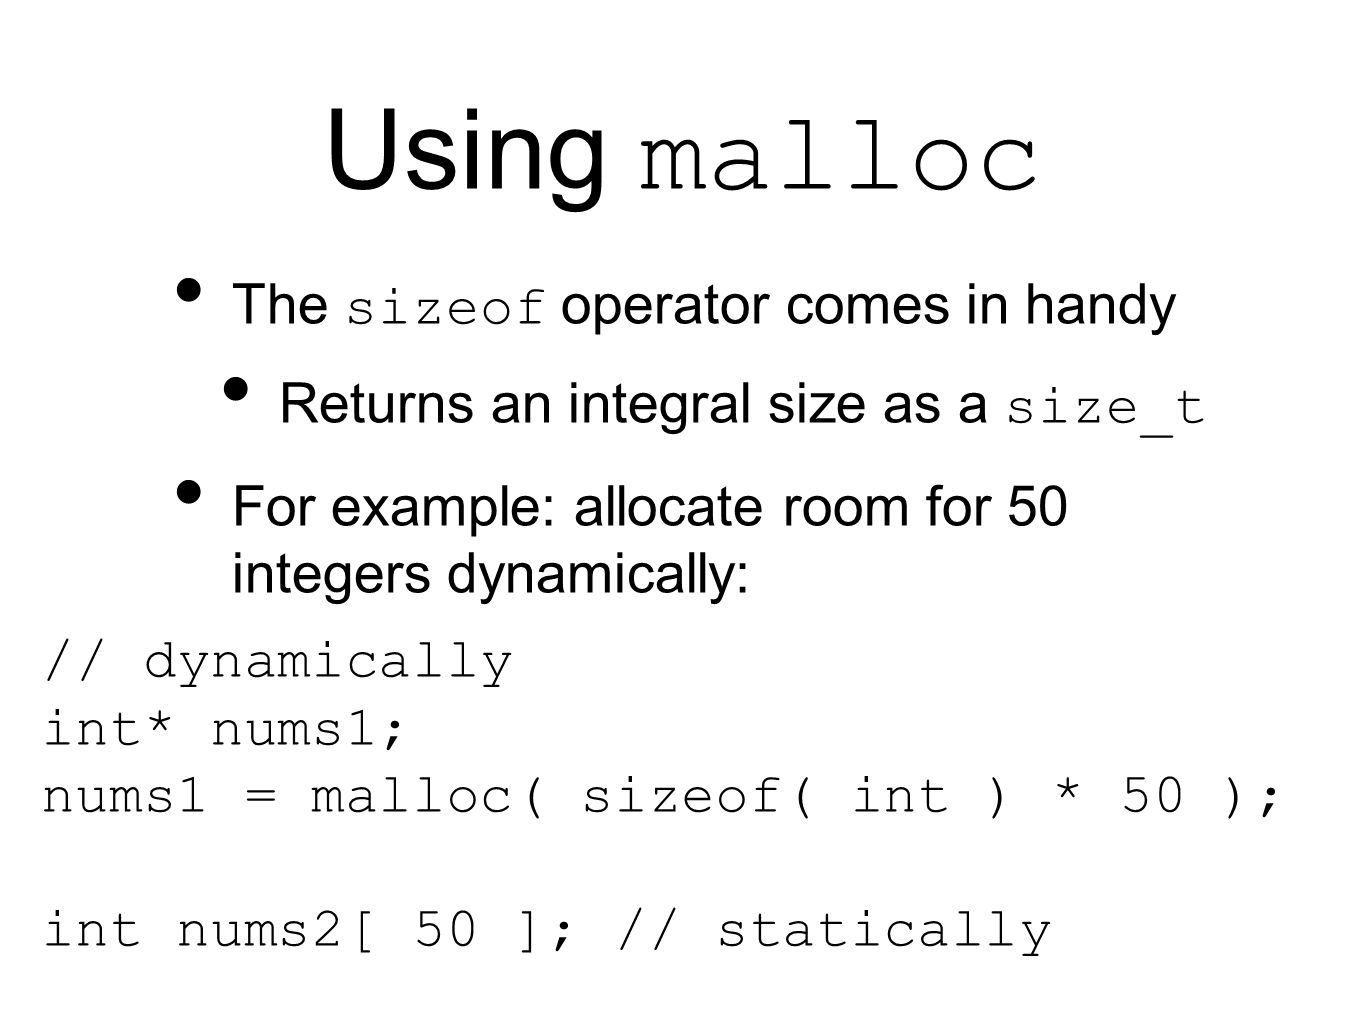 Using malloc The sizeof operator comes in handy Returns an integral size as a size_t For example: allocate room for 50 integers dynamically: // dynamically int* nums1; nums1 = malloc( sizeof( int ) * 50 ); int nums2[ 50 ]; // statically